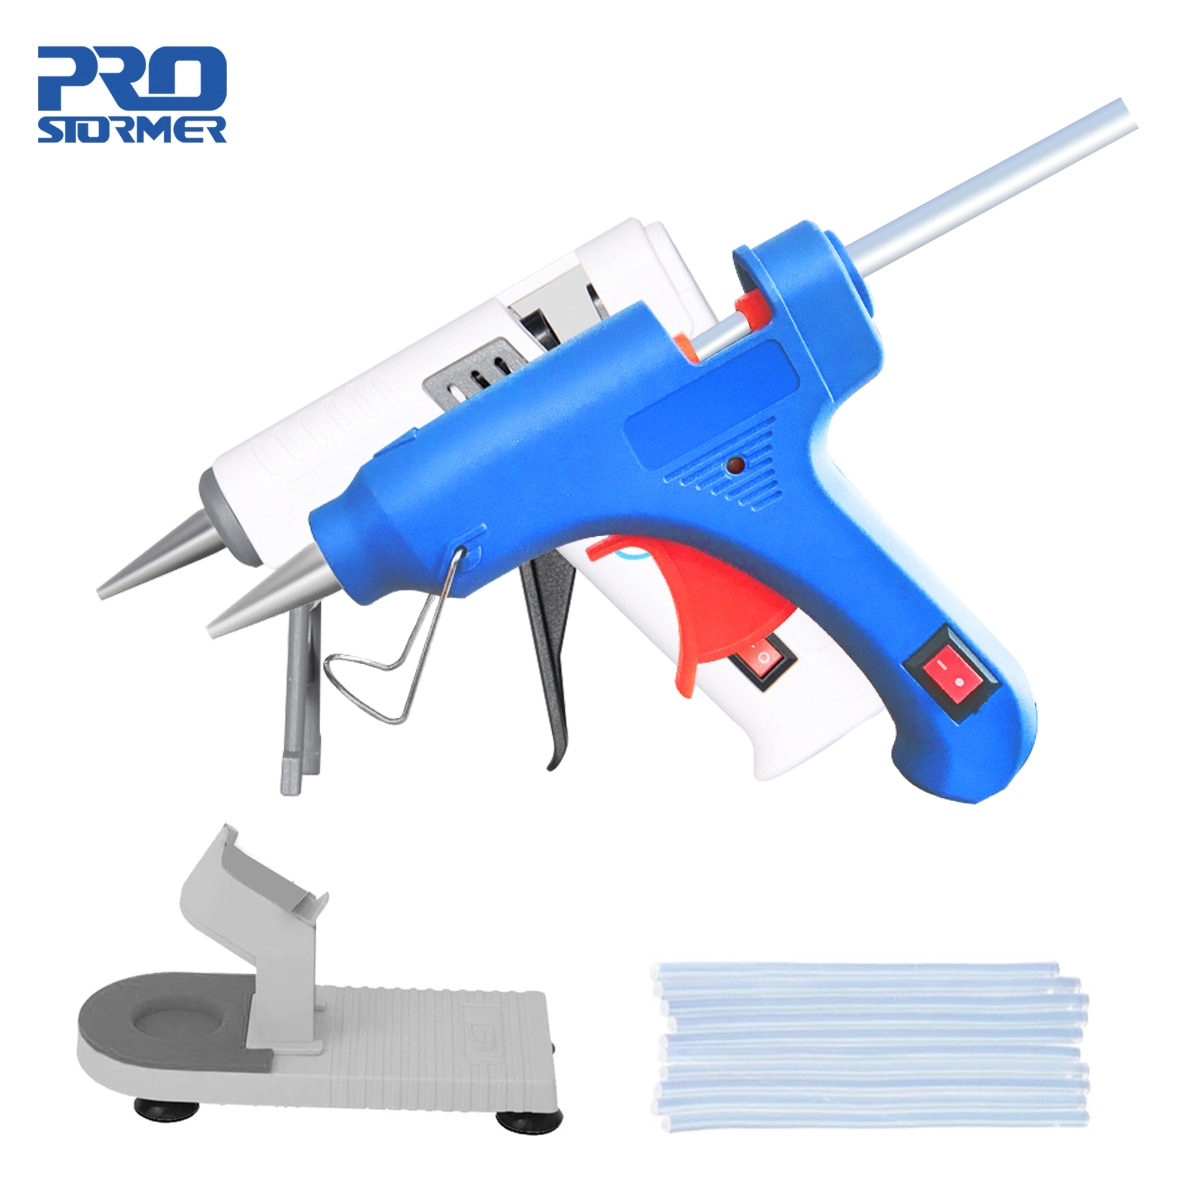 20W High Temp Heater Melt Hot Glue Gun Home DIY Repair Tool EU Use 7mm Glue Sticks Optional Base Hea